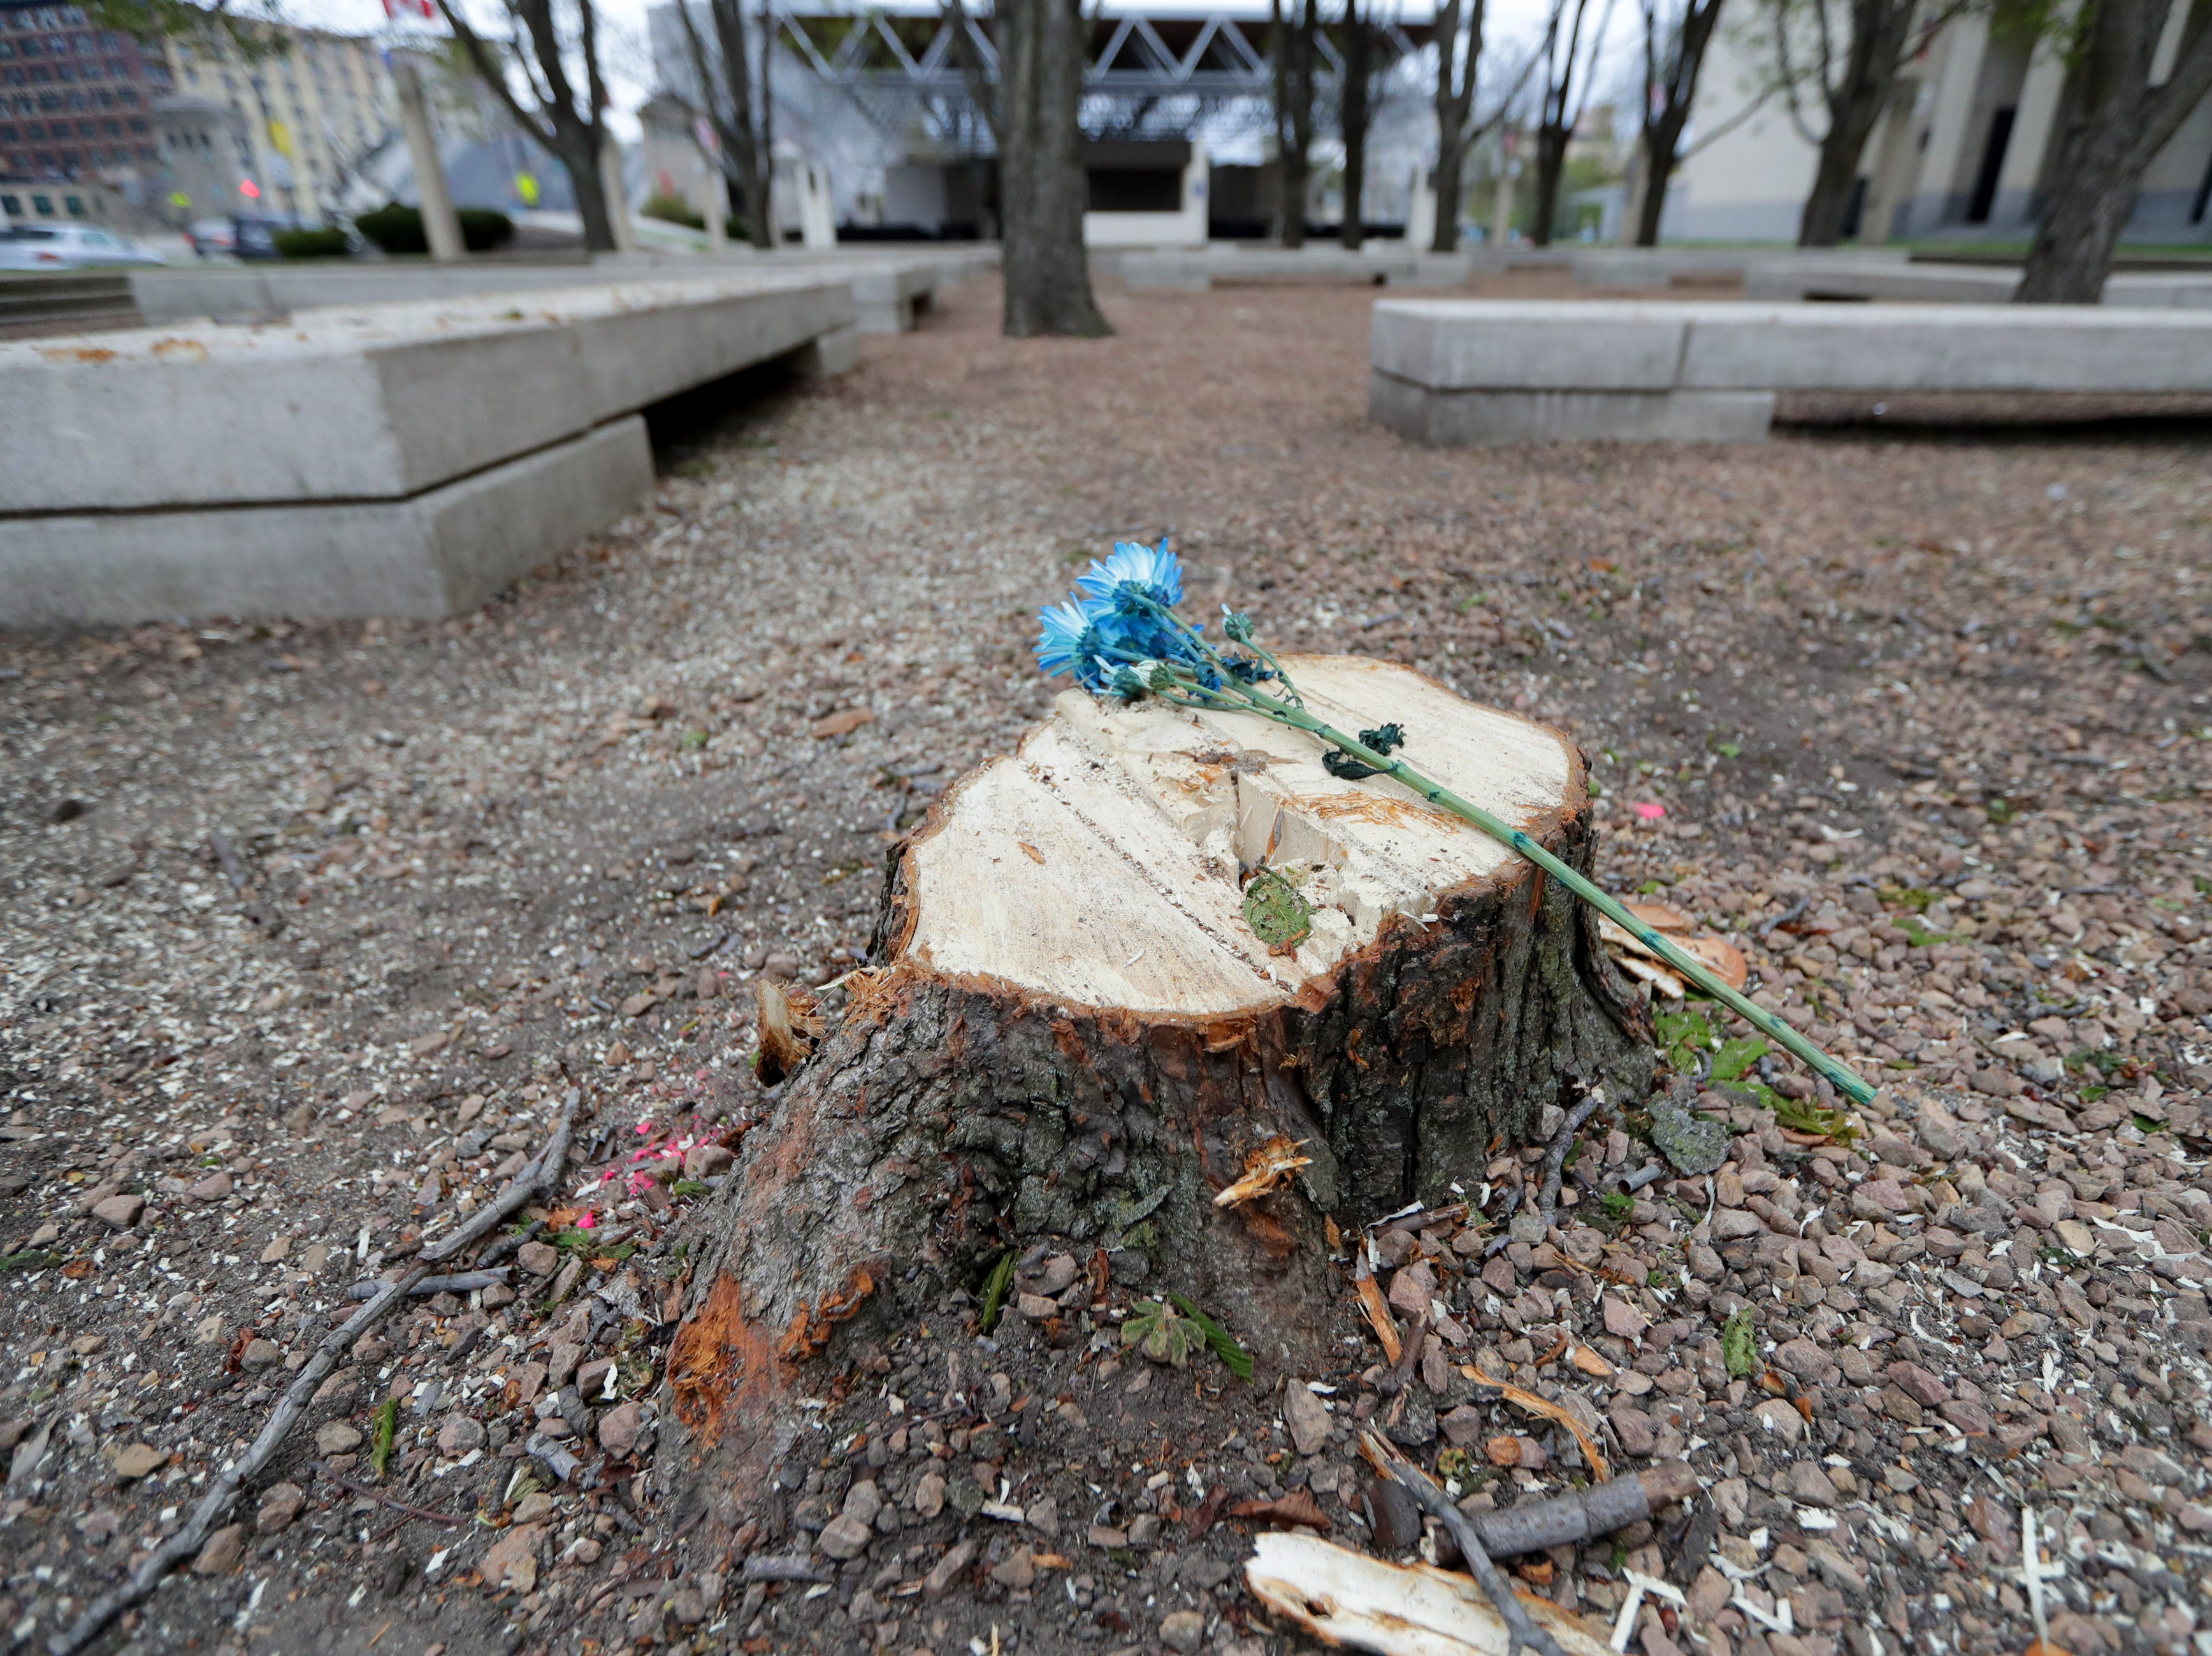 Flowers have been placed on tree stumps in the sunken grove outside the Marcus Center for the Performing Arts.